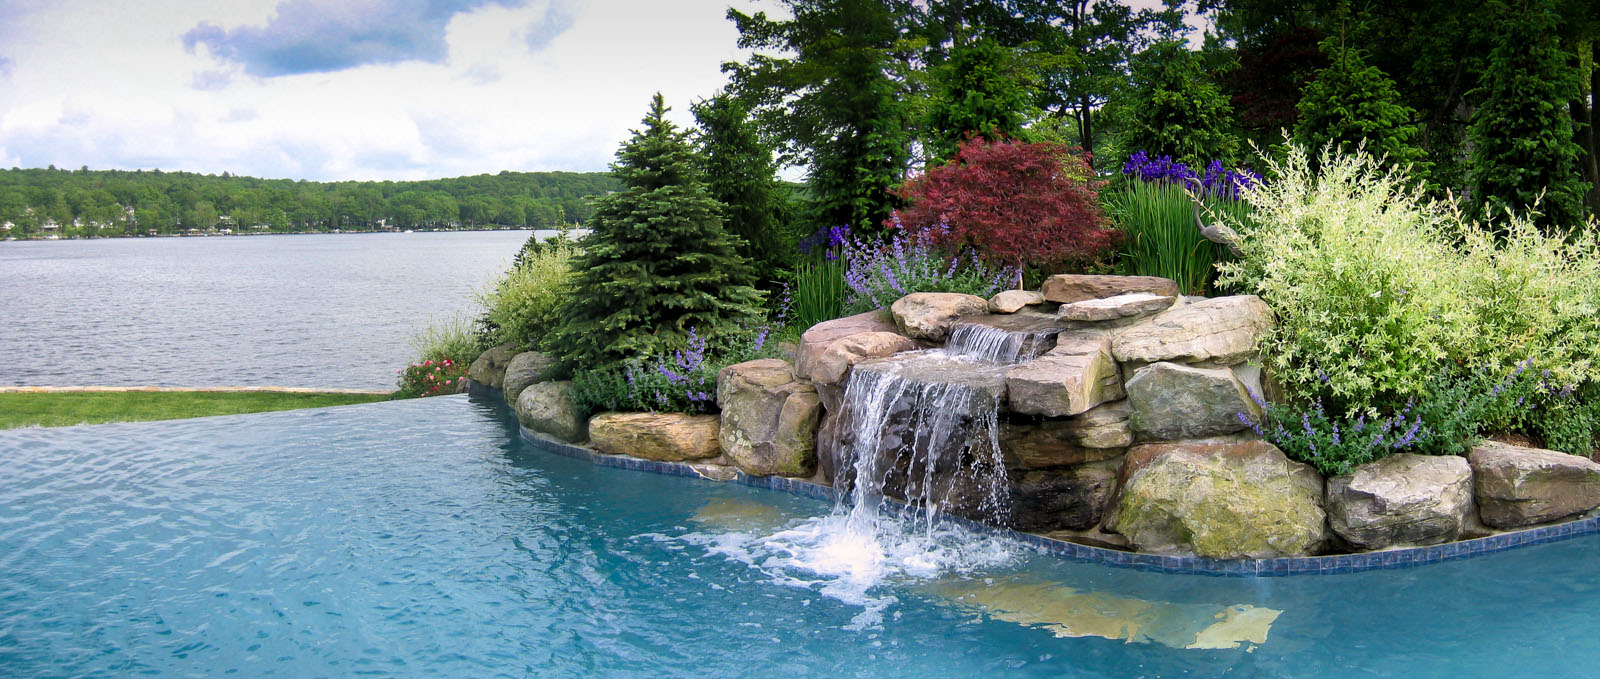 Design Landscape Around Pool swimming pool design portfolio serving north jersey clc landscape plantings around waterfall